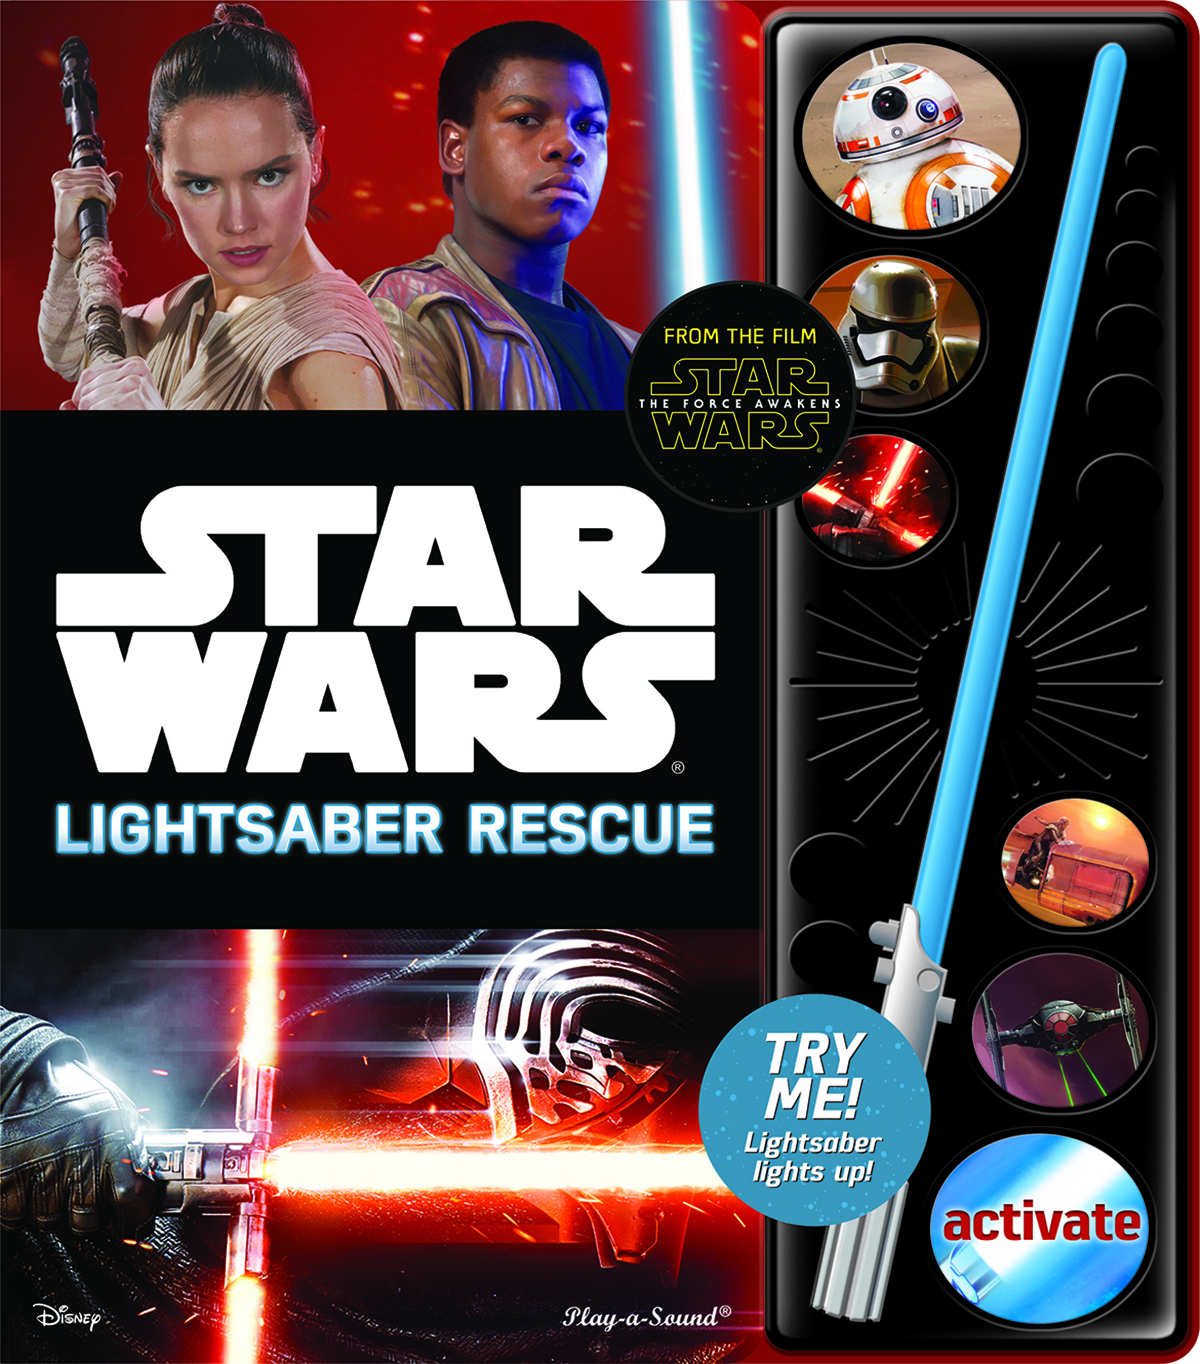 Star Wars: Lightsaber Rescue